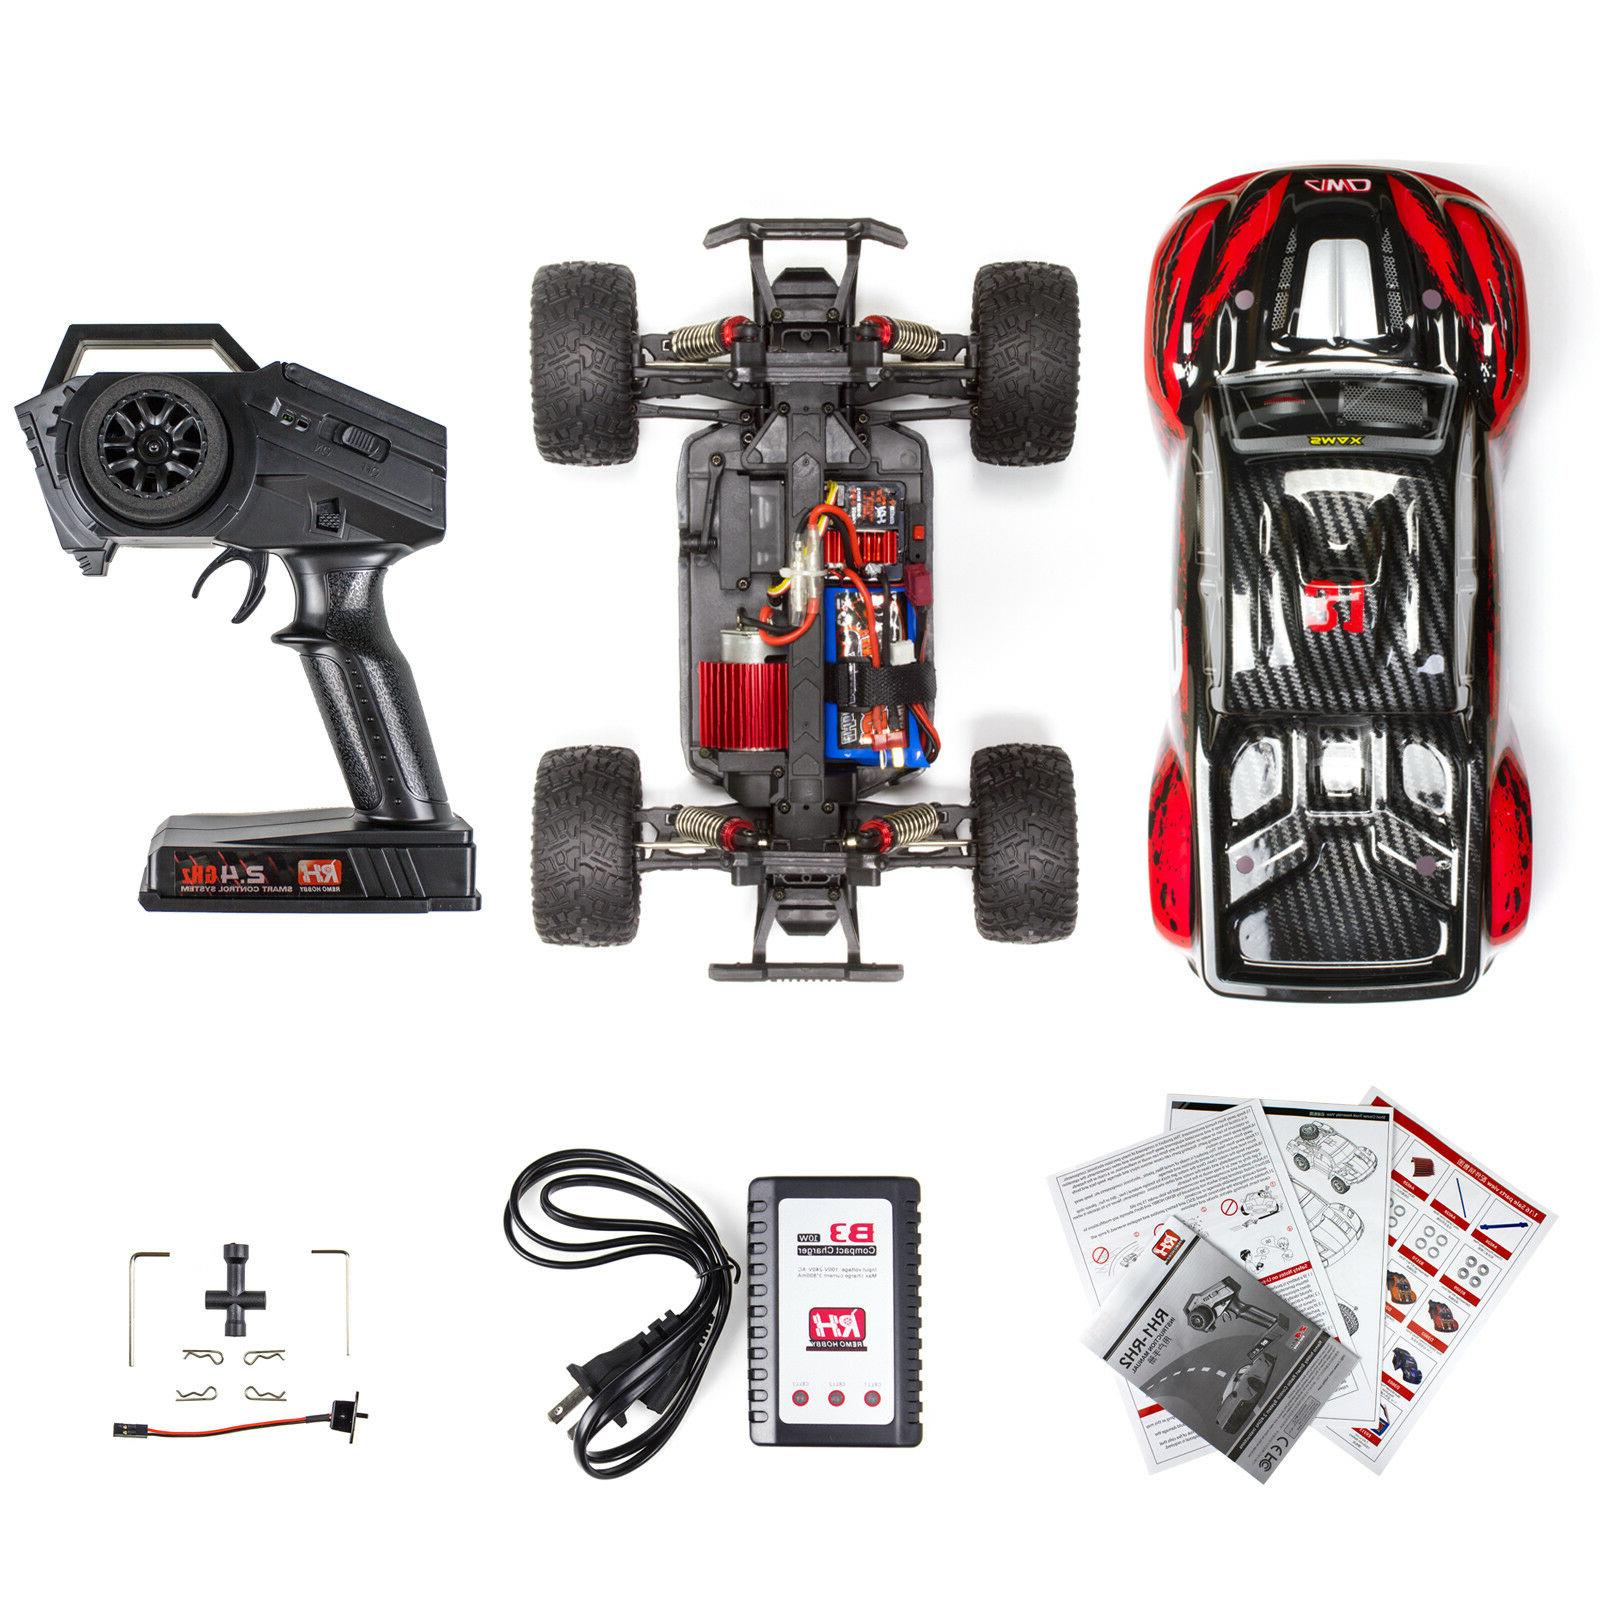 REMO 1/16 Truck Off-Road Bushed Remote Car Red